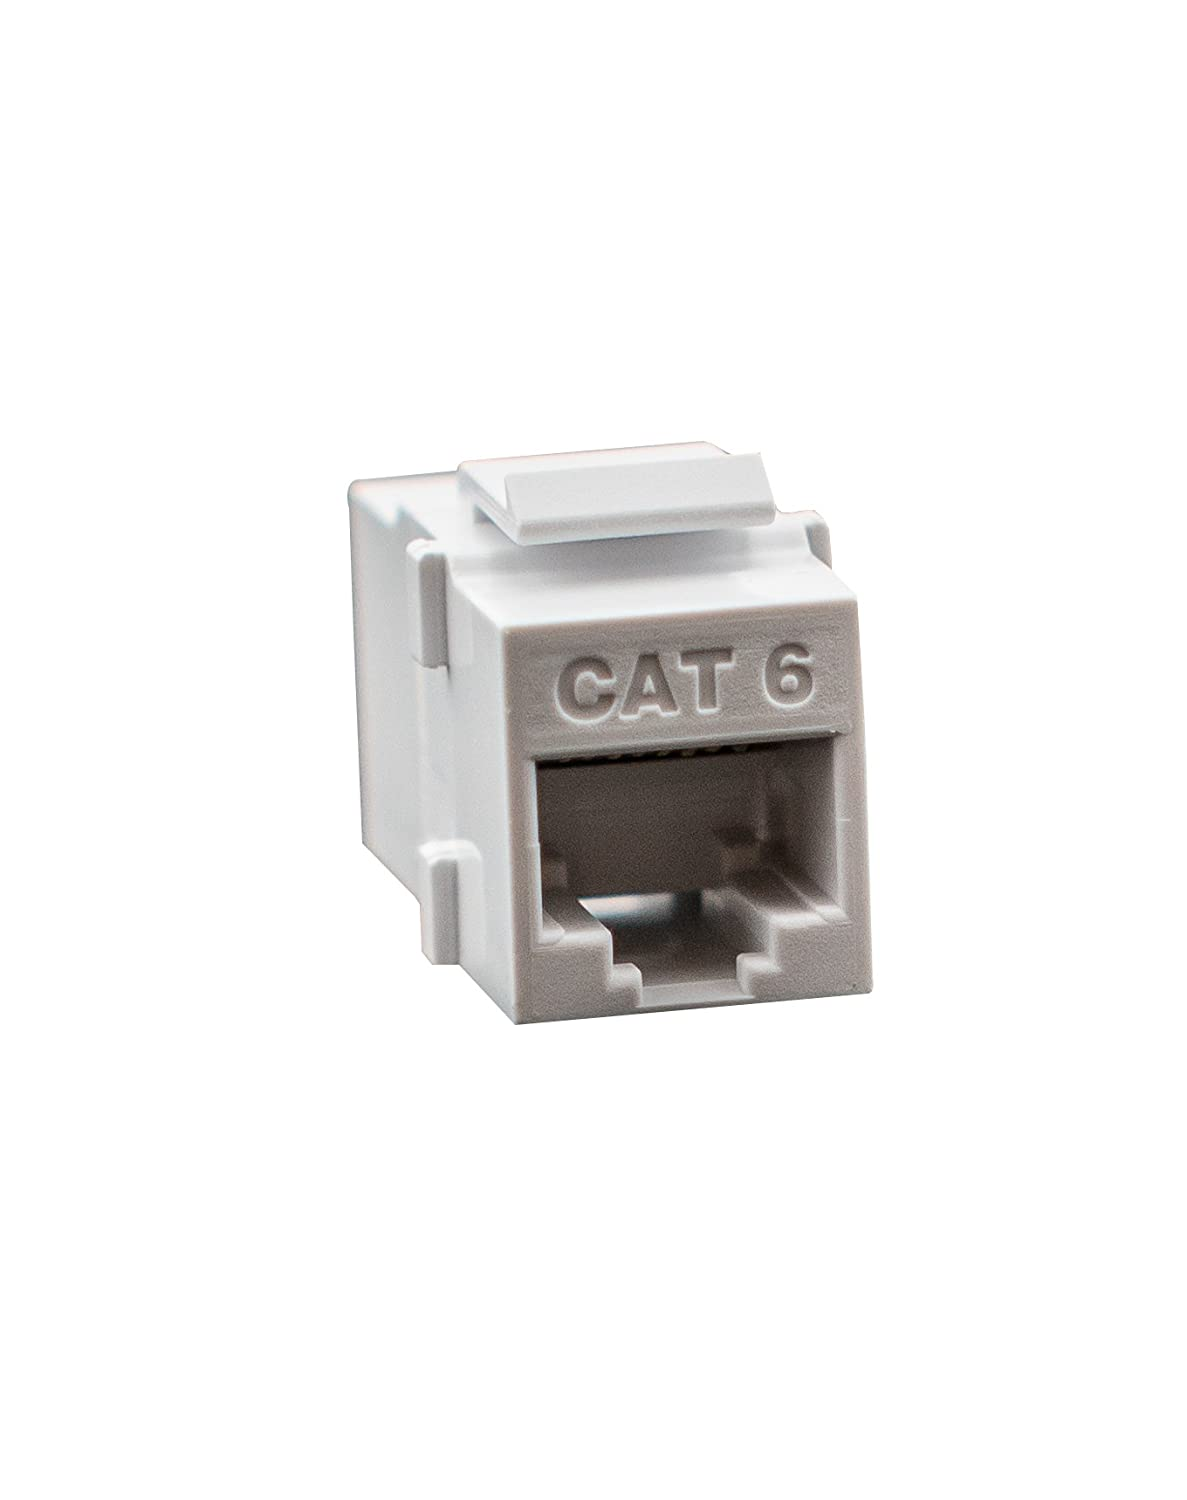 Legrand On Q Cat 6 Coupler Keystone Insert White Wp3452whv1 B Amp A Jack Wiring Diagram Plug Adapters